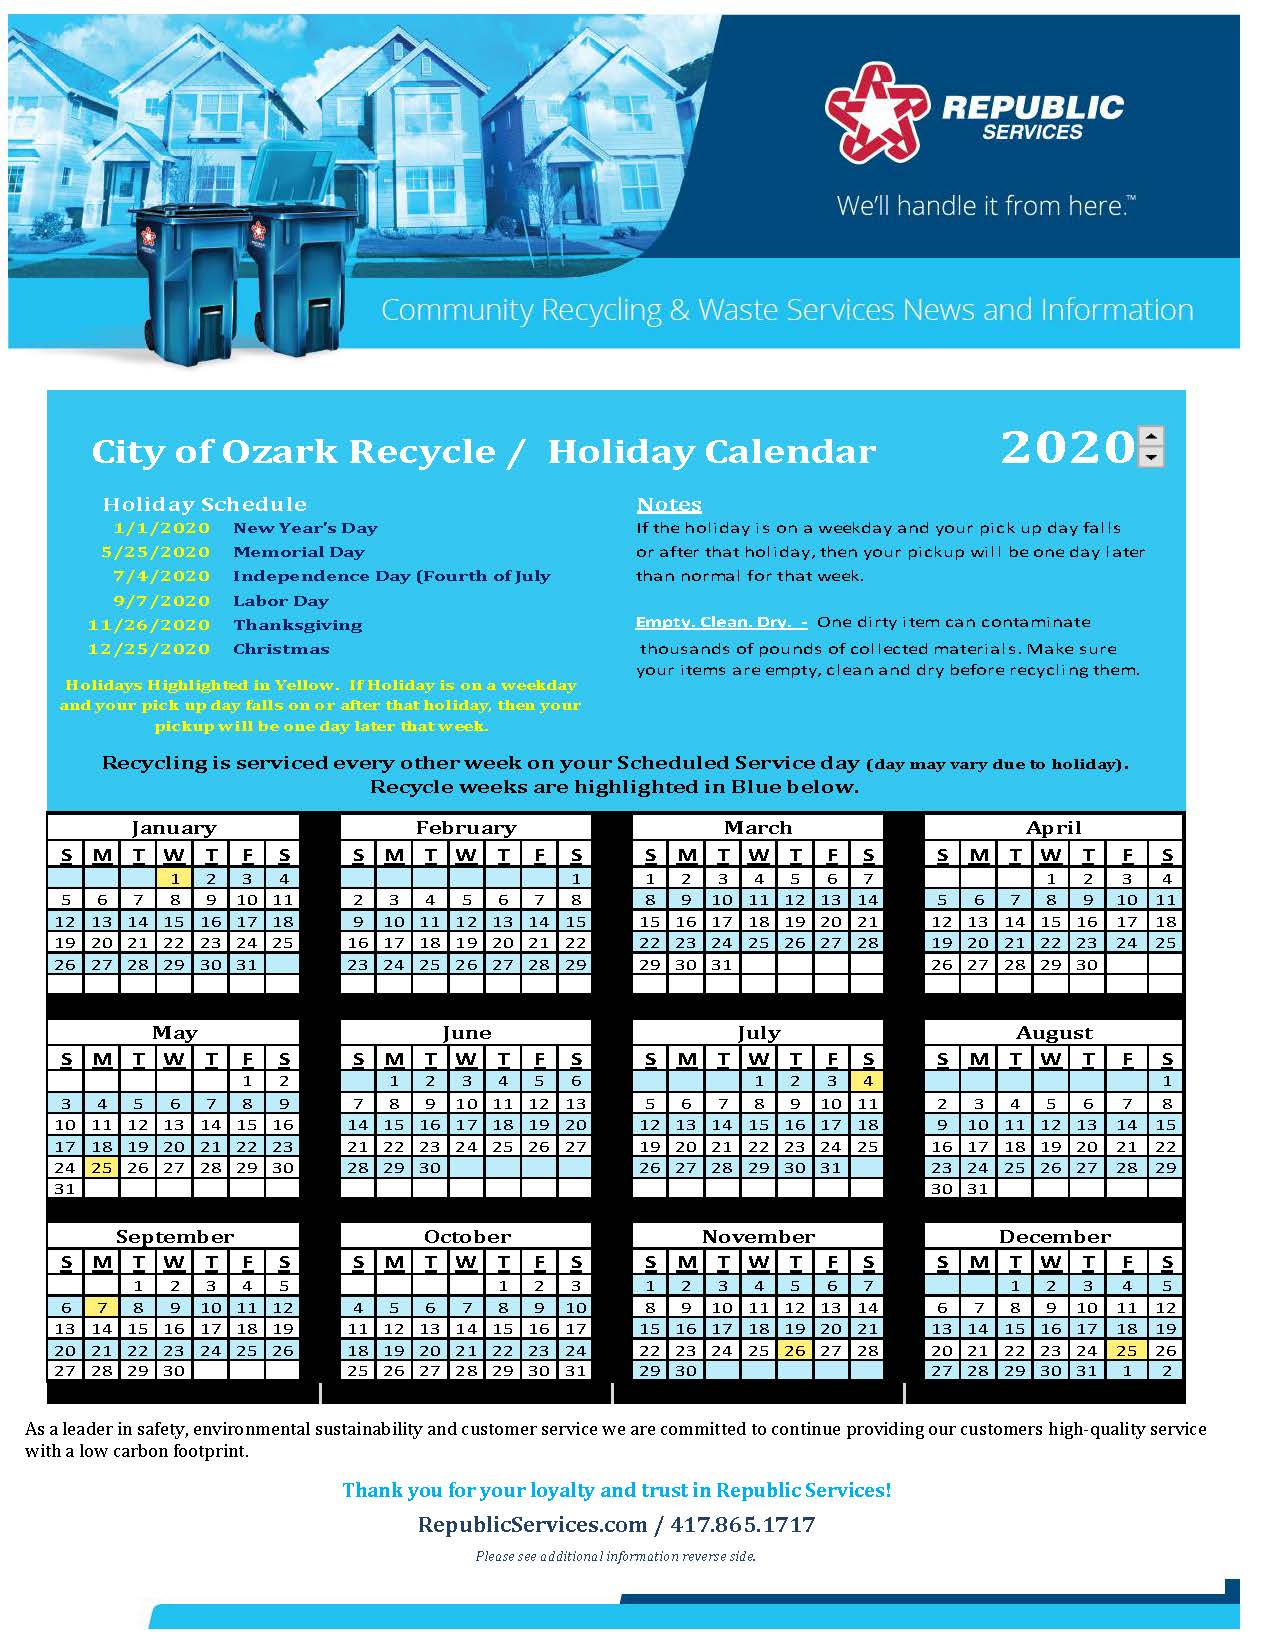 City of Ozark Recycle Calendar 2020 (1)_Page_1